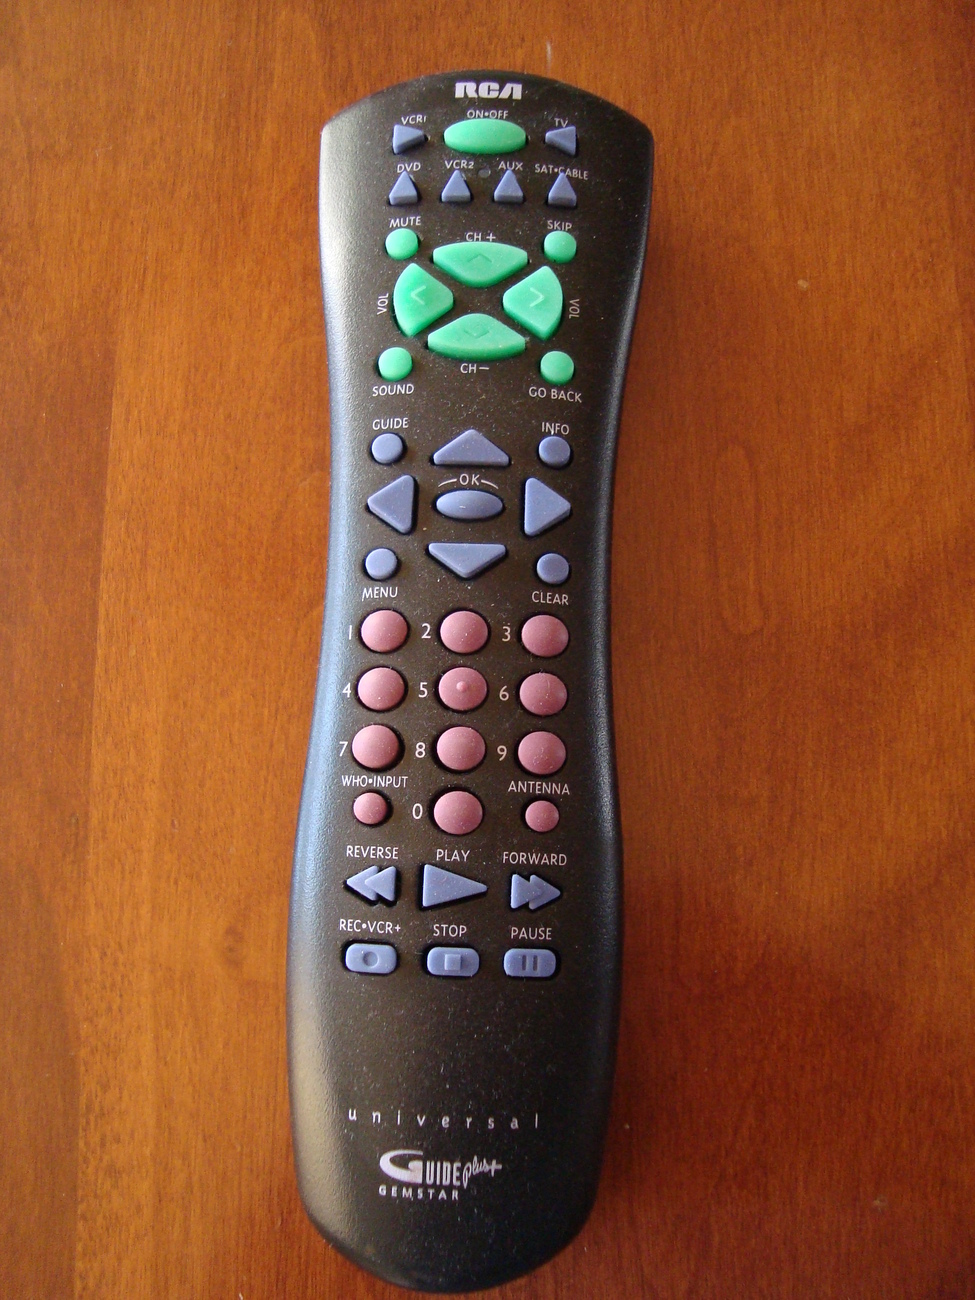 RCA CRK76TE1 UNIVERSAL REMOTE - With Gemstar Guide Plus